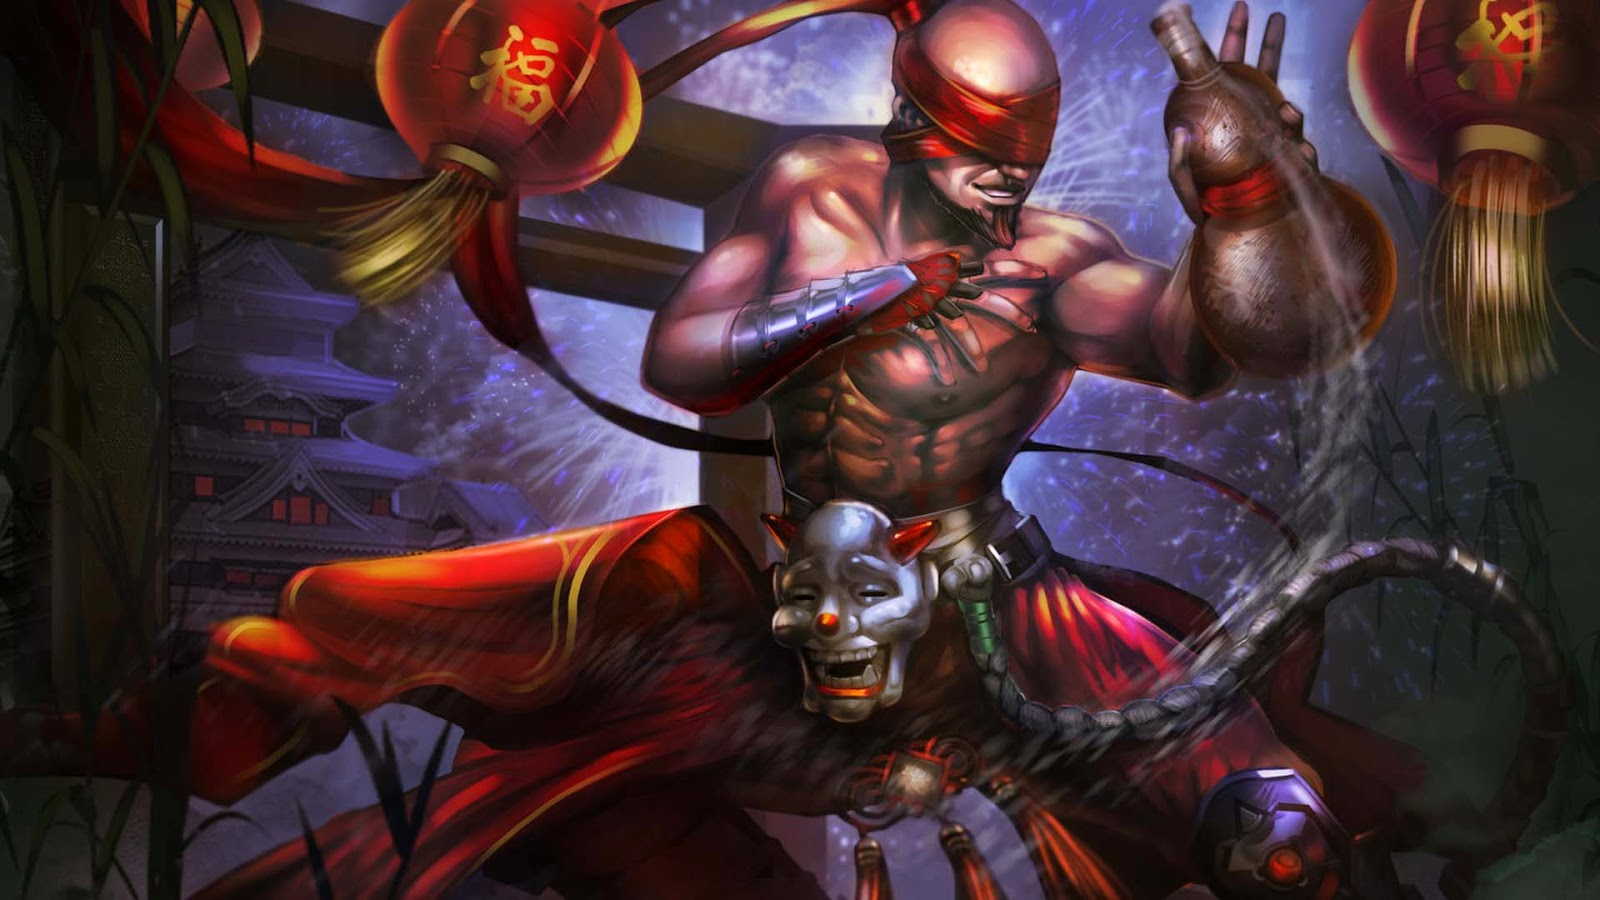 League Of Legends Wallpaper And Cover Photos Blog Lee Sin League